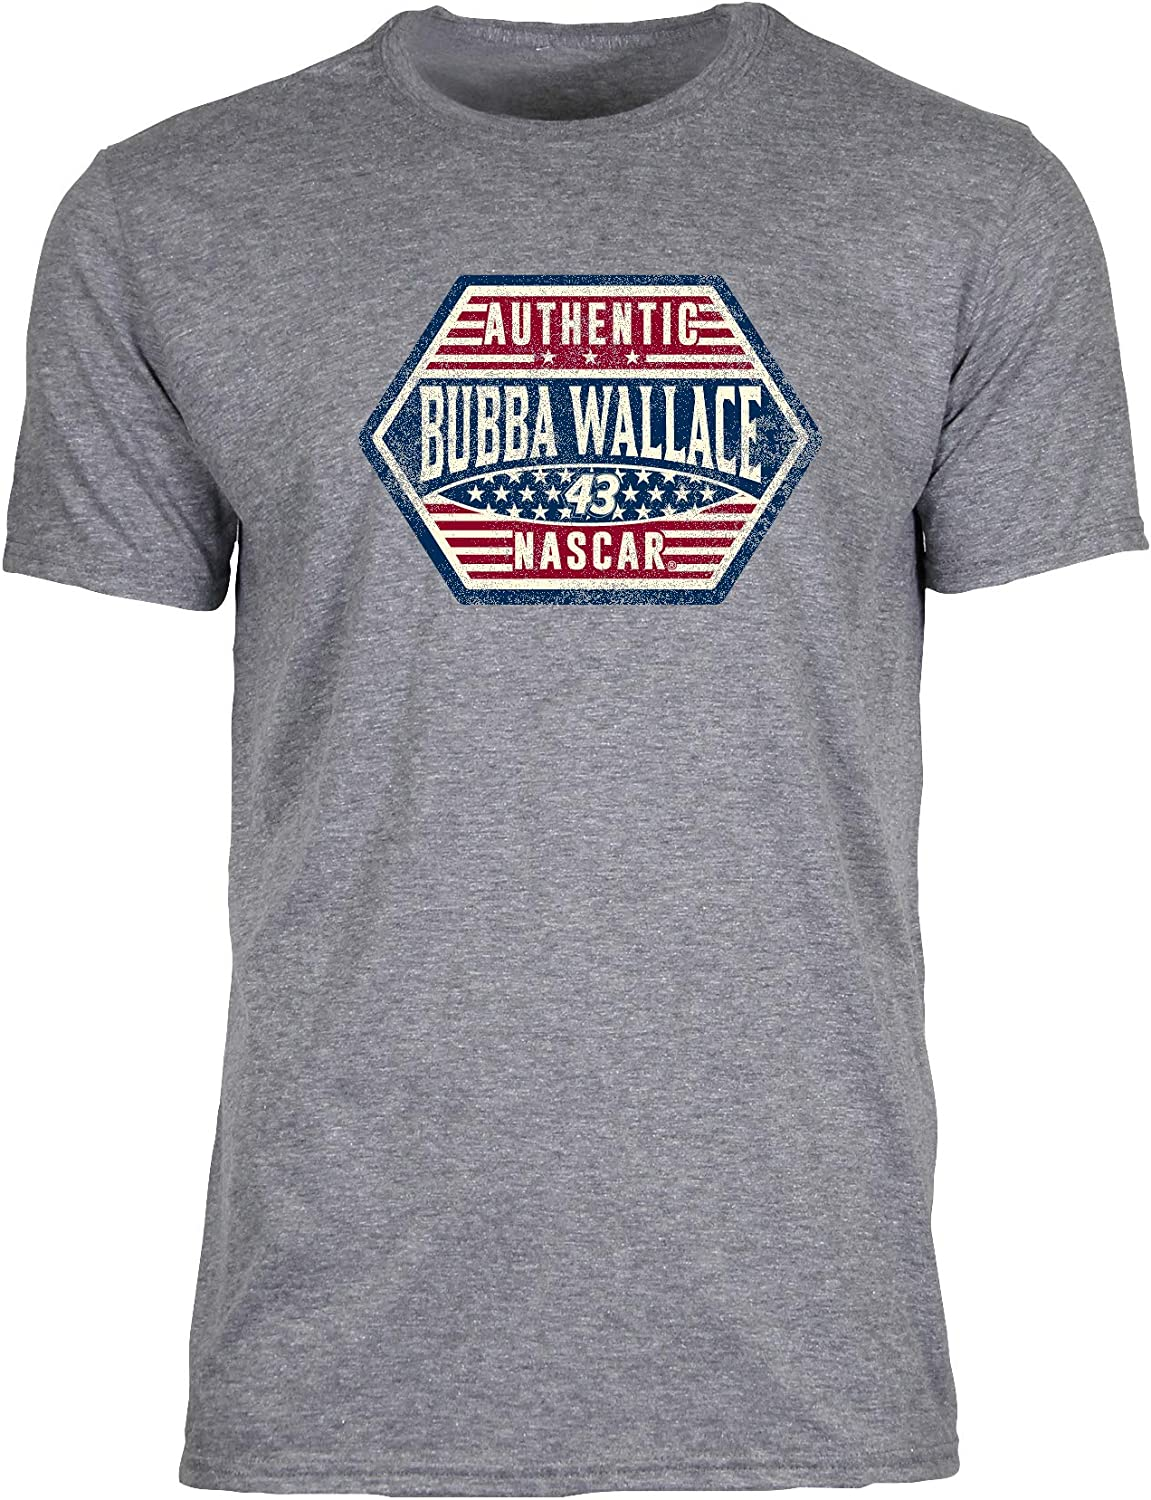 X-Large Premium Heather//Crest NASCAR Richard Petty Motorsports Bubba Wallace Mens Vintage Sheer S//S TVintage Sheer S//S T